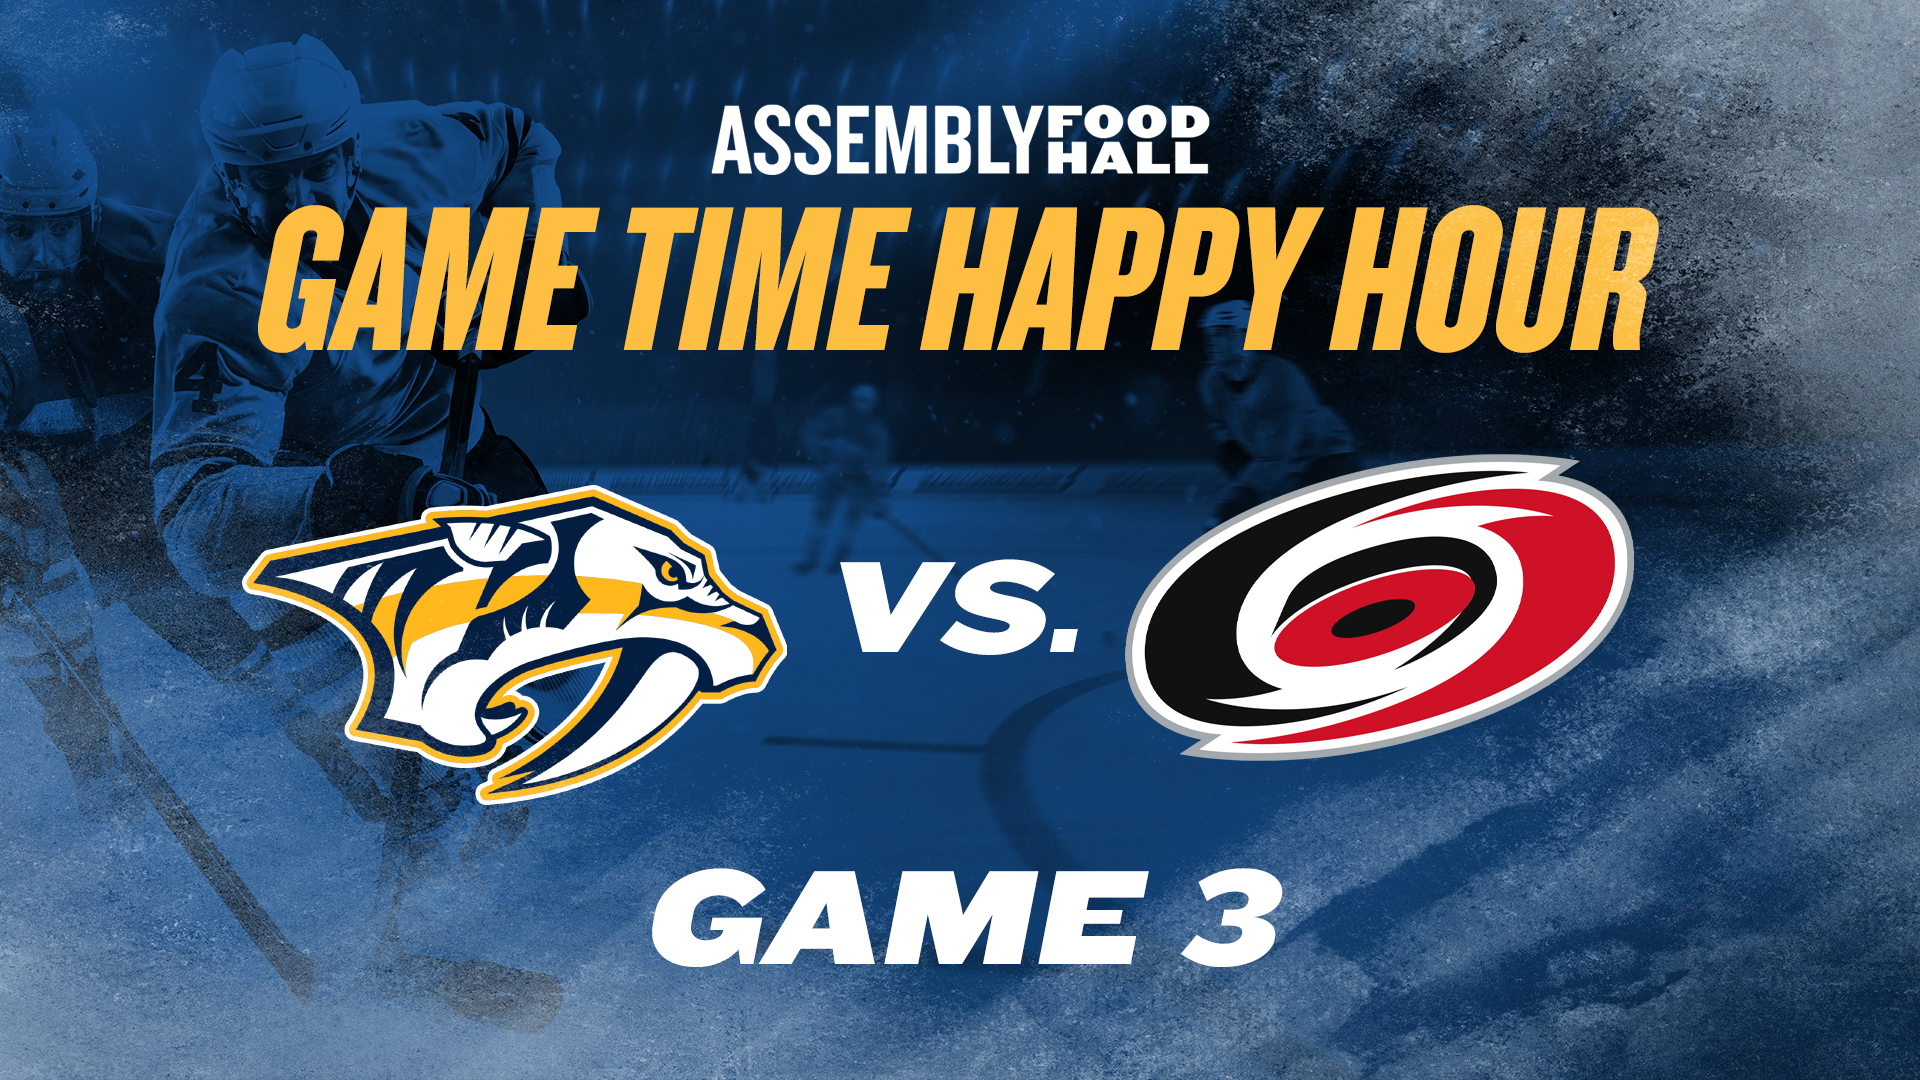 Promo image of Predators v. Hurricanes Game Time Happy Hour | Game 3